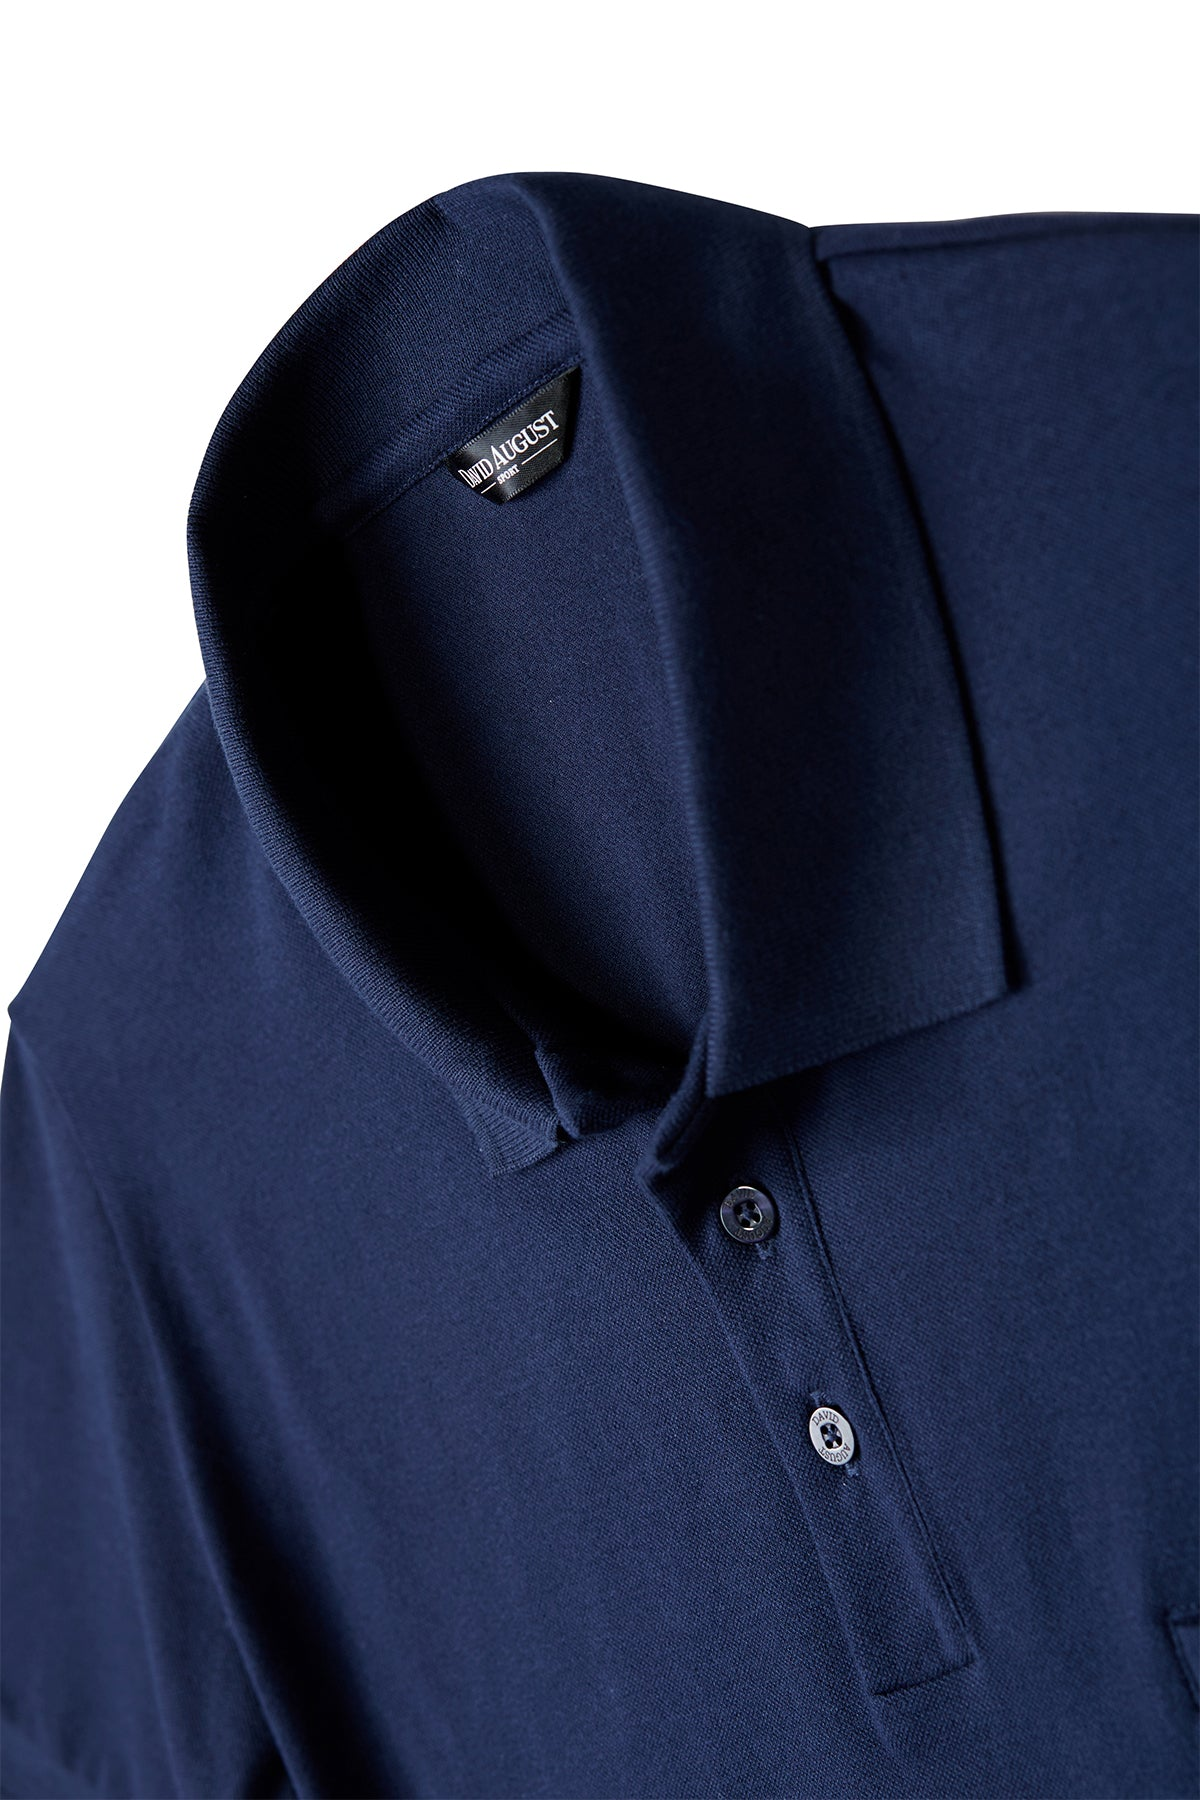 David August Pima Pique Cotton Polo in Navy